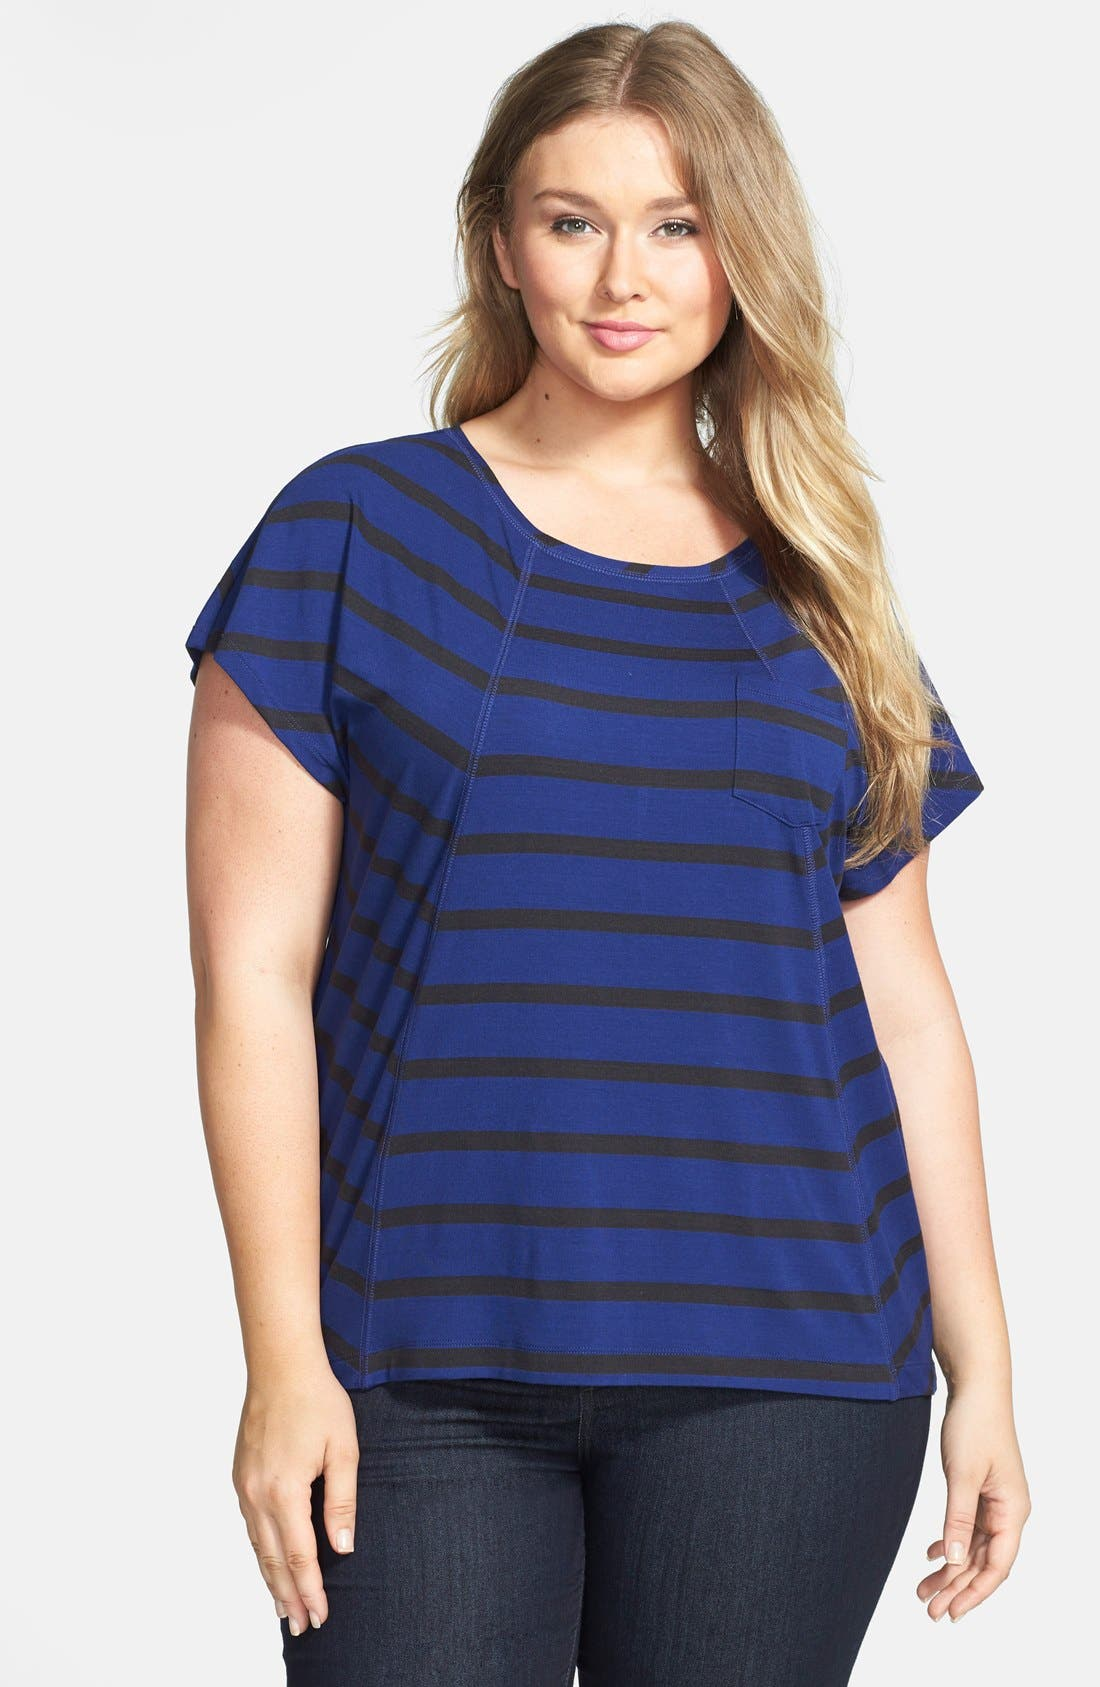 Alternate Image 1 Selected - Sejour Stripe Block Tee (Plus Size)